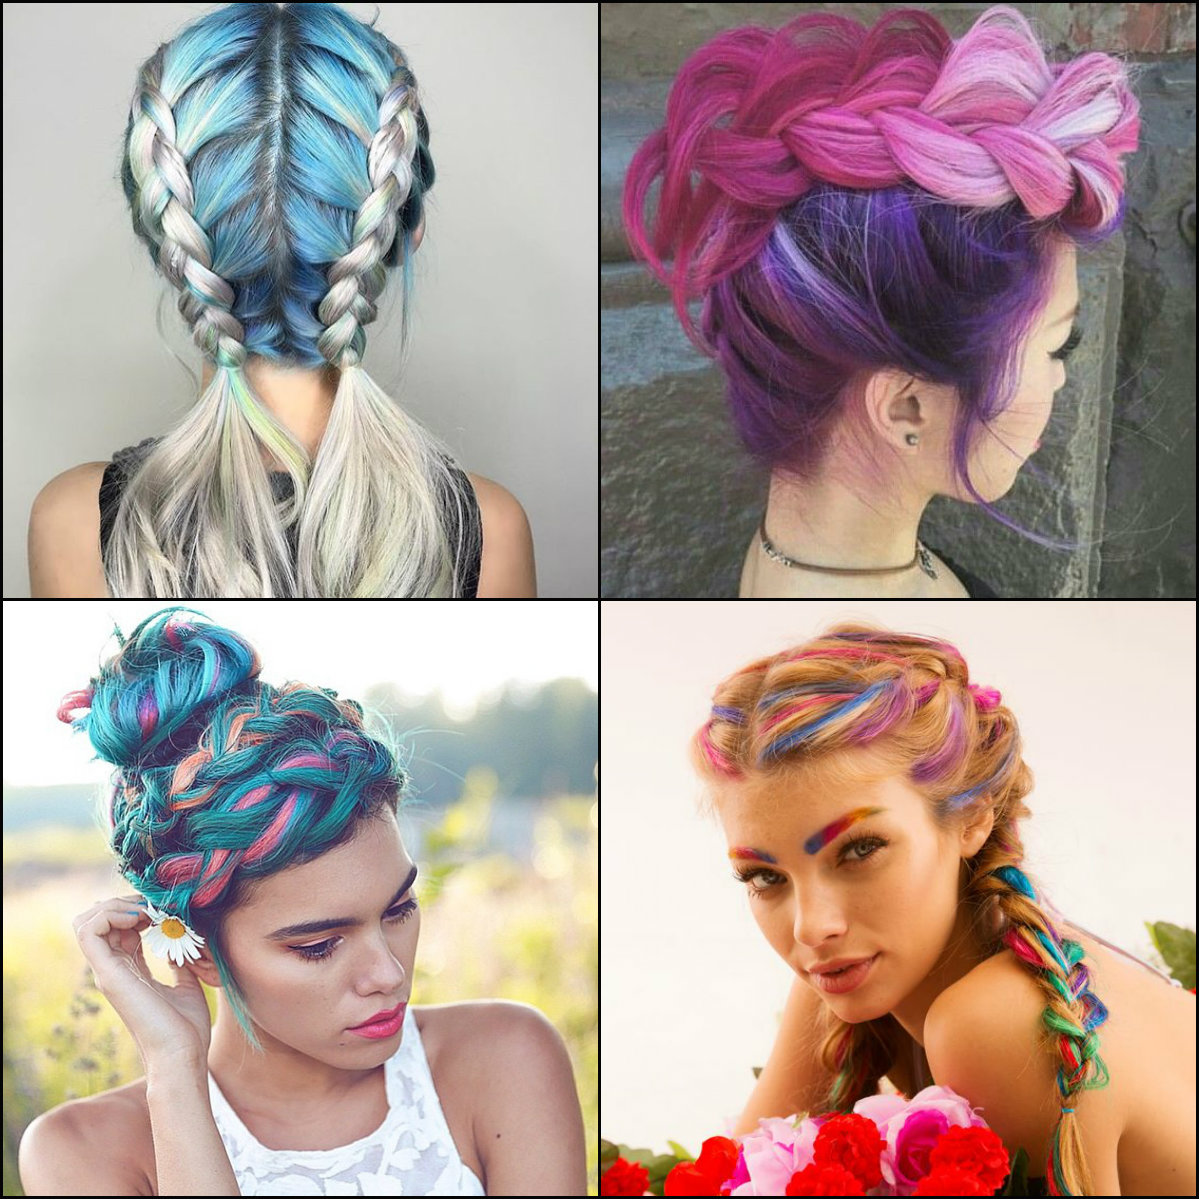 Mohawk Hairstyle Archives  Hairstyles 2017 Hair Colors and Haircuts